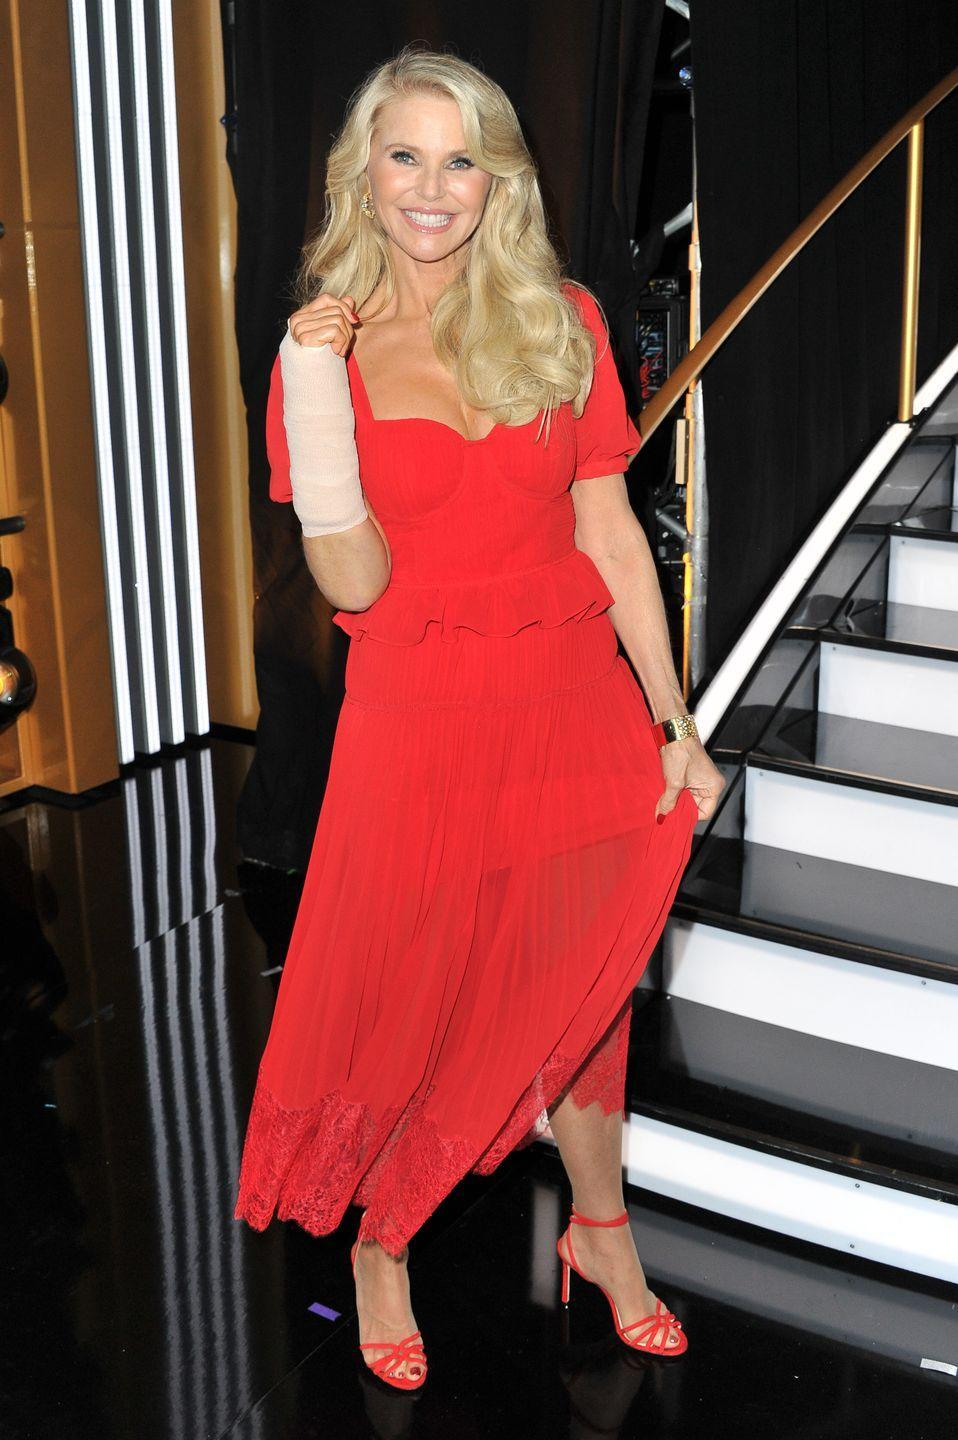 "<p>The <a href=""https://www.womenshealthmag.com/health/a29269663/christie-brinkley-dwts-arm-injury-photos/"" rel=""nofollow noopener"" target=""_blank"" data-ylk=""slk:supermodel fell and broke her arm during rehearsals"" class=""link rapid-noclick-resp"">supermodel fell and broke her arm during rehearsals</a> the week before the premiere of <em>DWTS</em> season 28. The fall reportedly left her with multiple broken bones, a dislocated wrist, and required surgery to insert a metal plate in her arm. Unable to compete, Christie sat in the audience and her daughter Sailor Brinkley-Cook took her place on the dance floor.</p>"